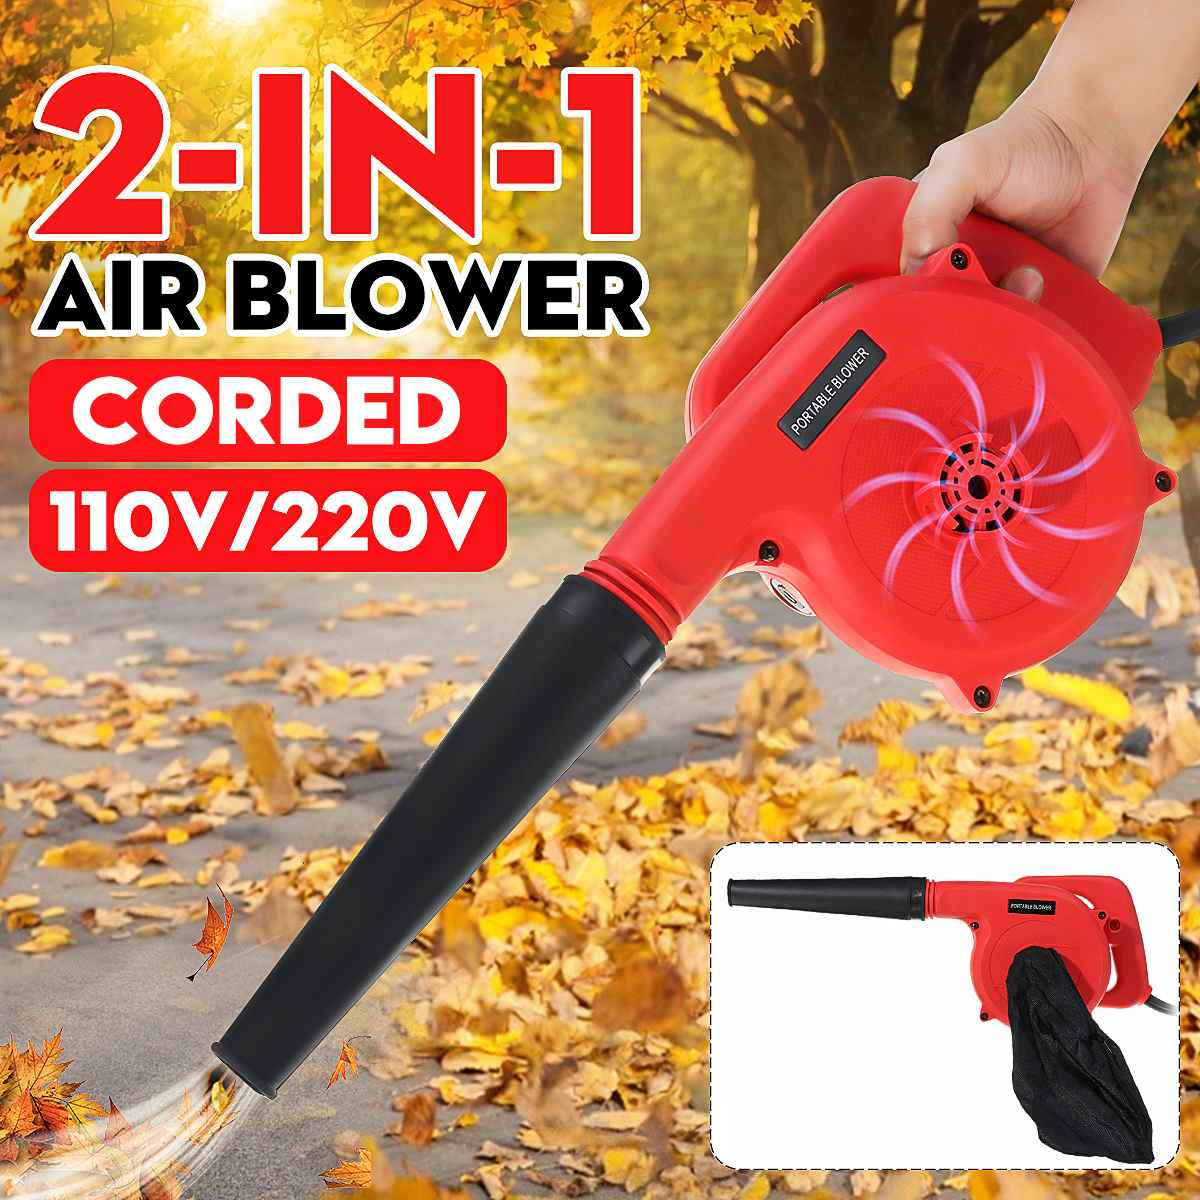 2IN1 Handheld Brushless Electric Air Blower Industrial Vacuum Dust Leaf Cleaner 110V/220V Computer Cleaning Home Vacuum Cleaner|Blowers|   - AliExpress